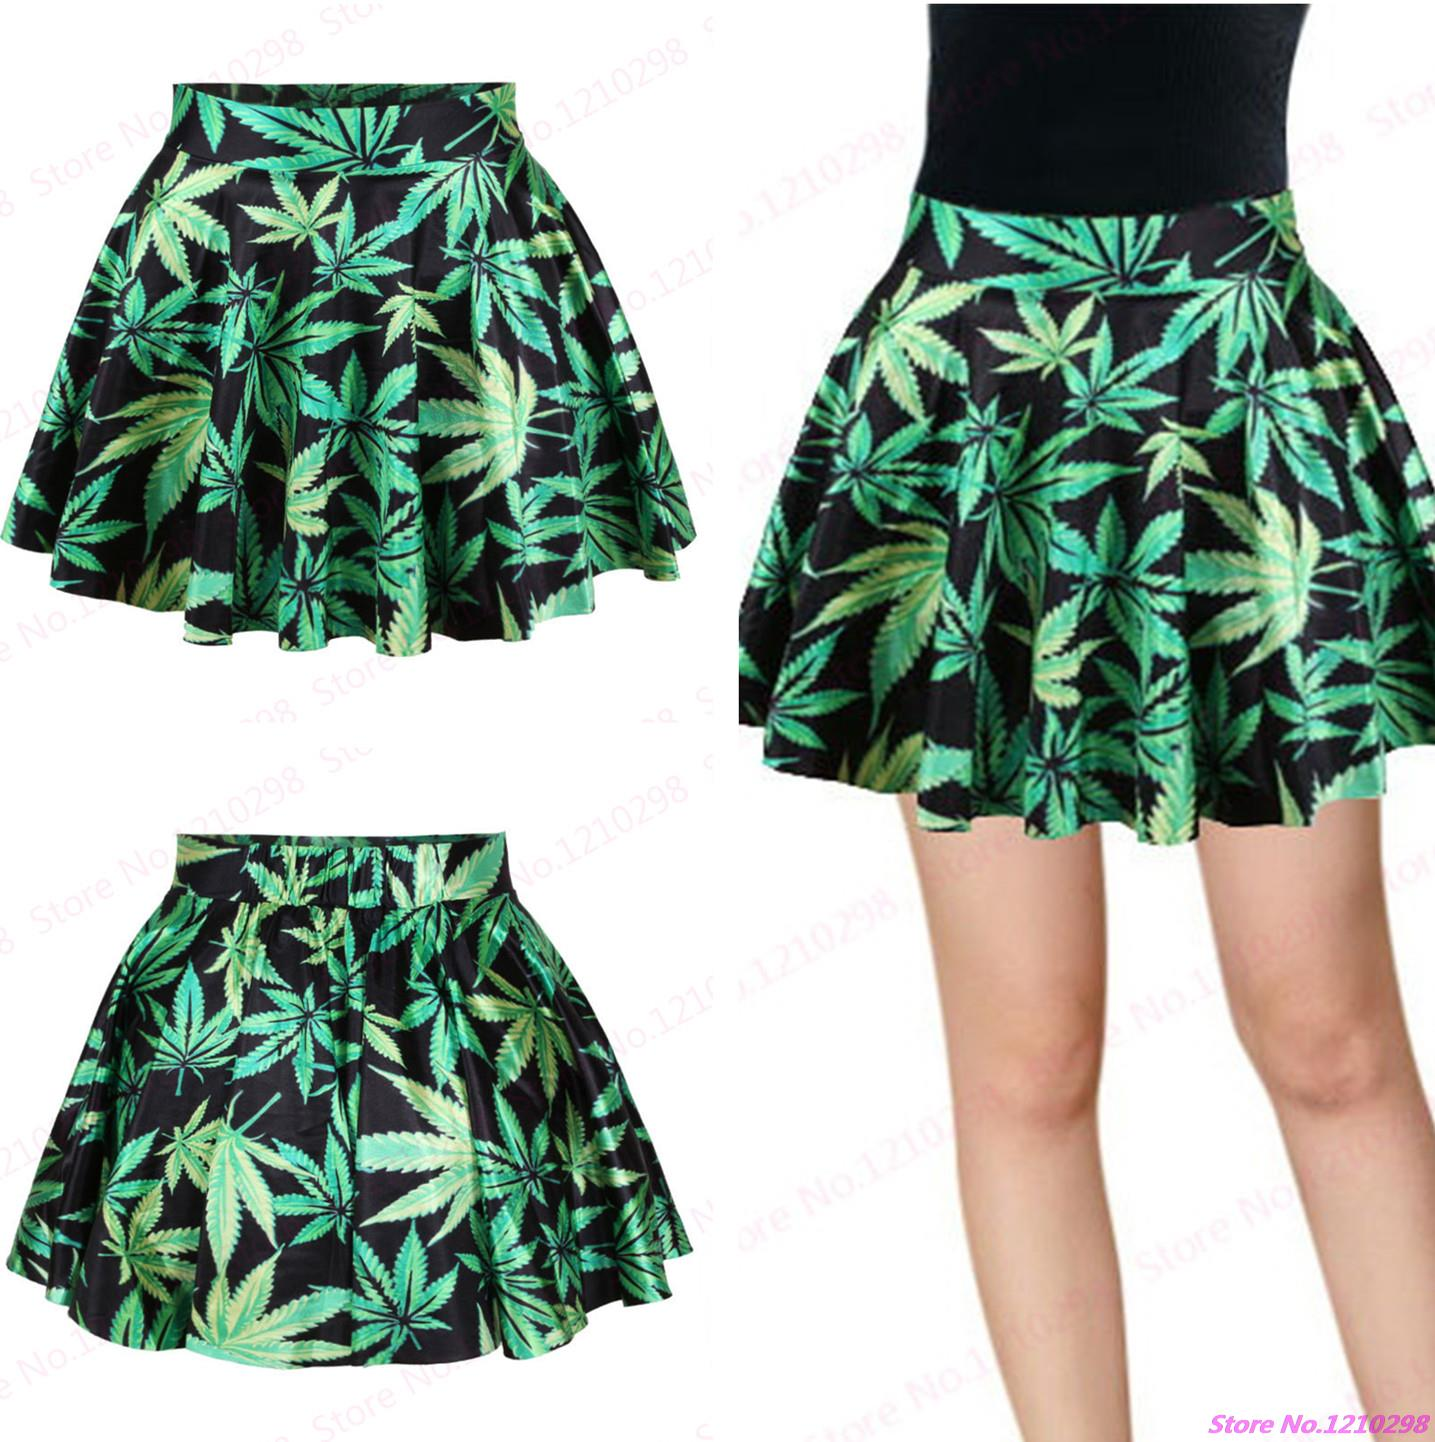 Compare Prices on Printed Tennis Skirt- Online Shopping/Buy Low ...